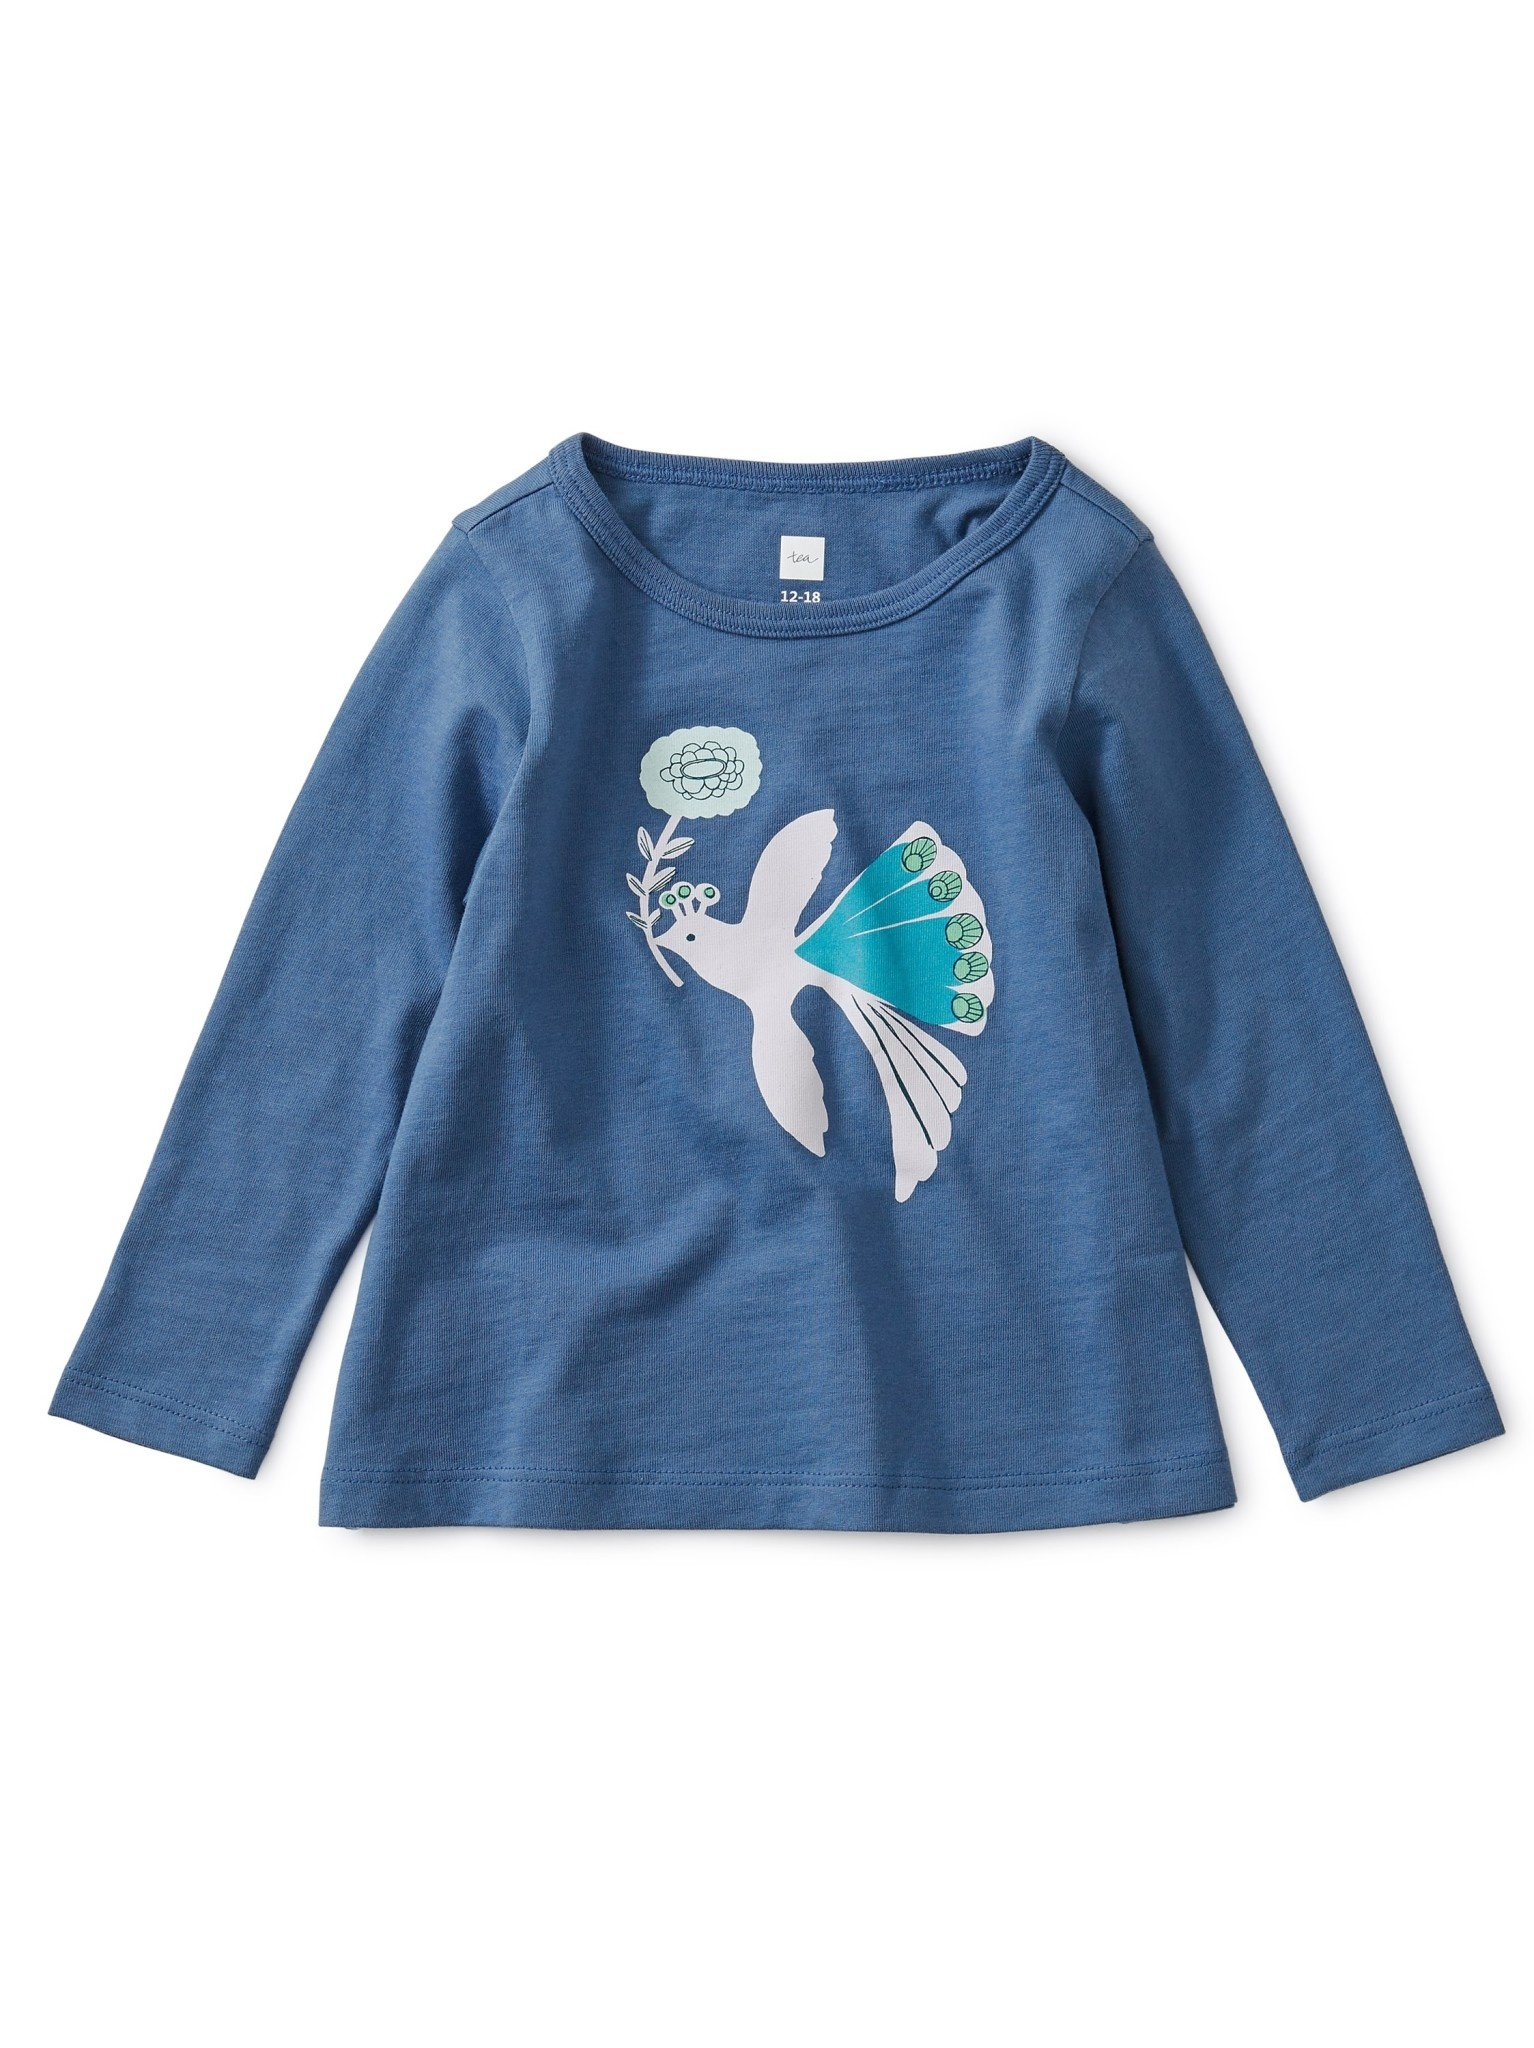 Tea Collection Peacock Graphic Tee